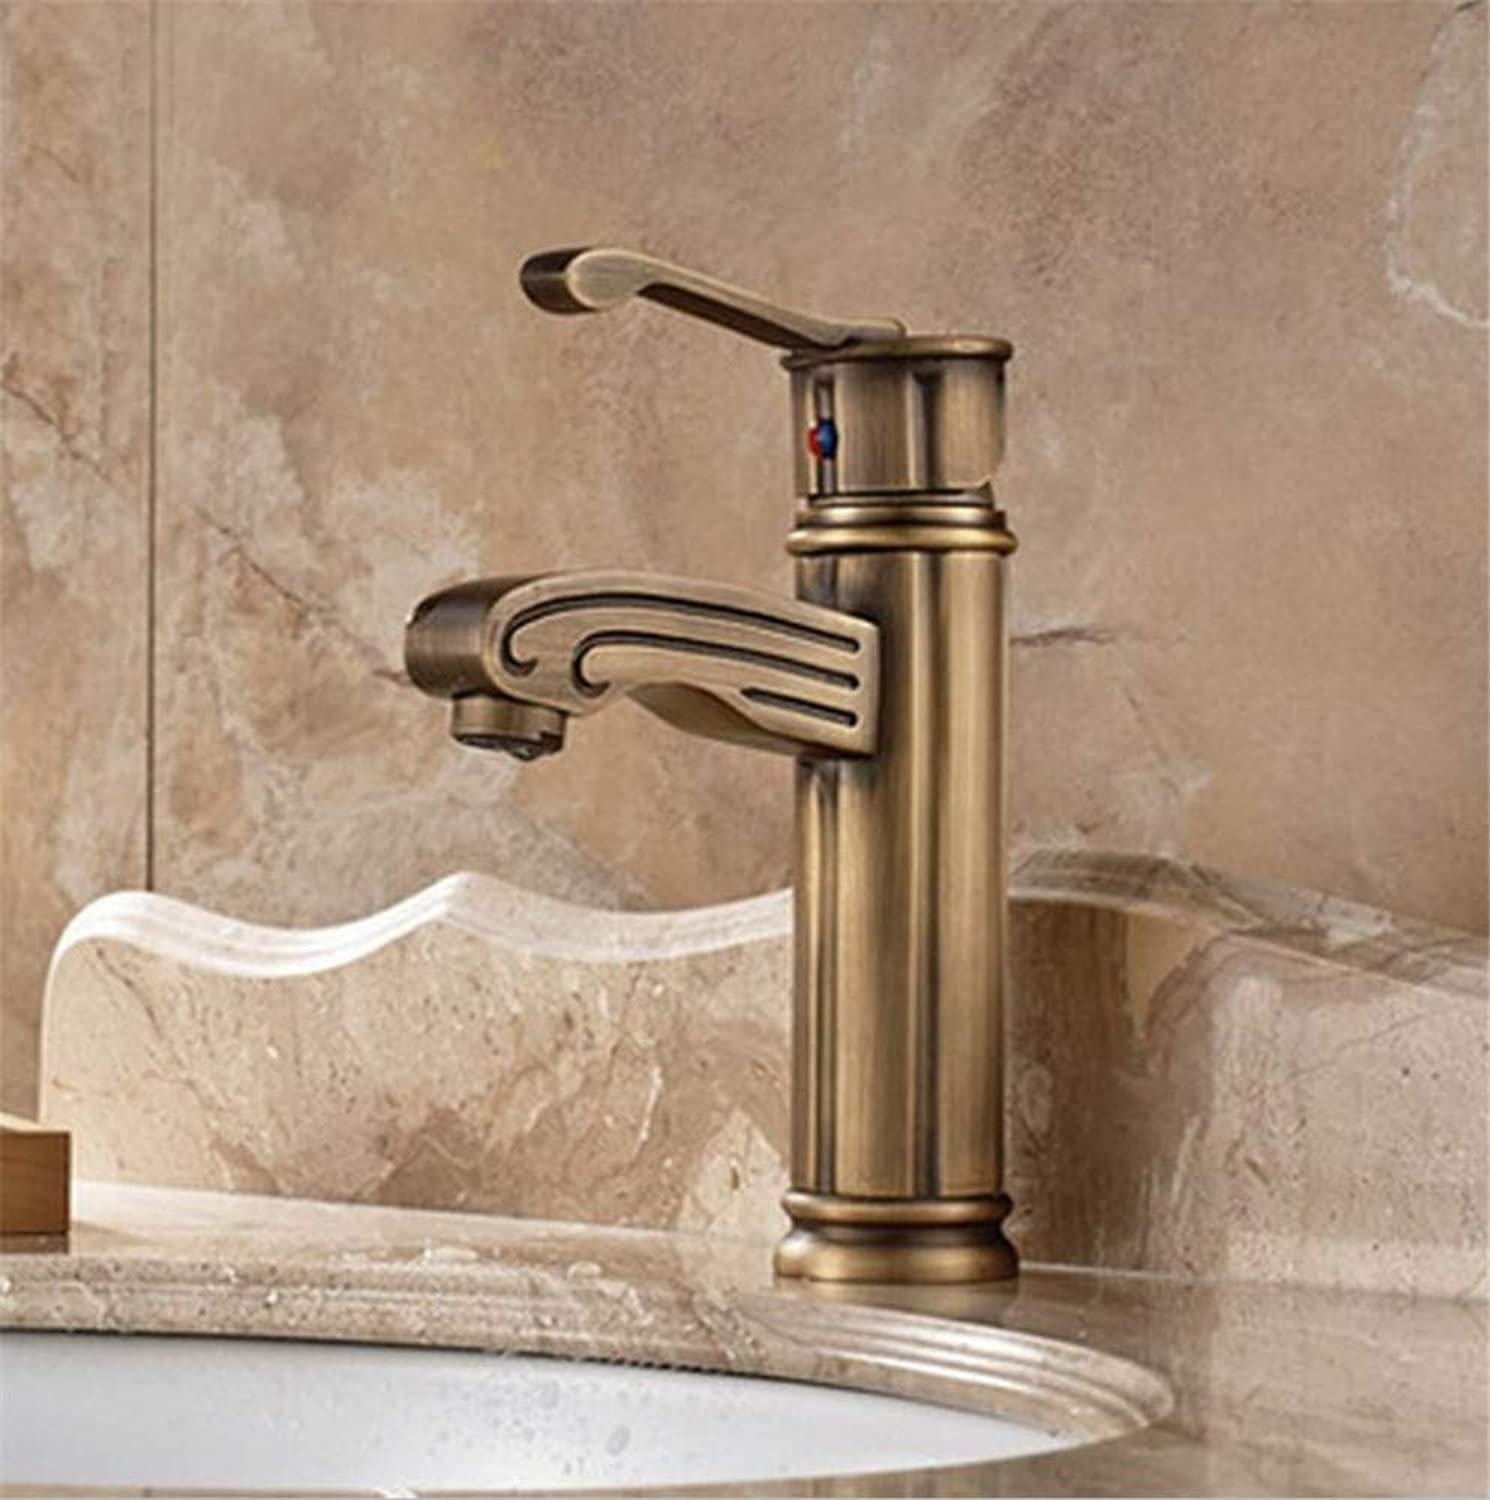 Bathroom Sink Basin Lever Mixer Tap Vintage Copper Copper Faucet Faucet Bathroom Cabinet Faucet